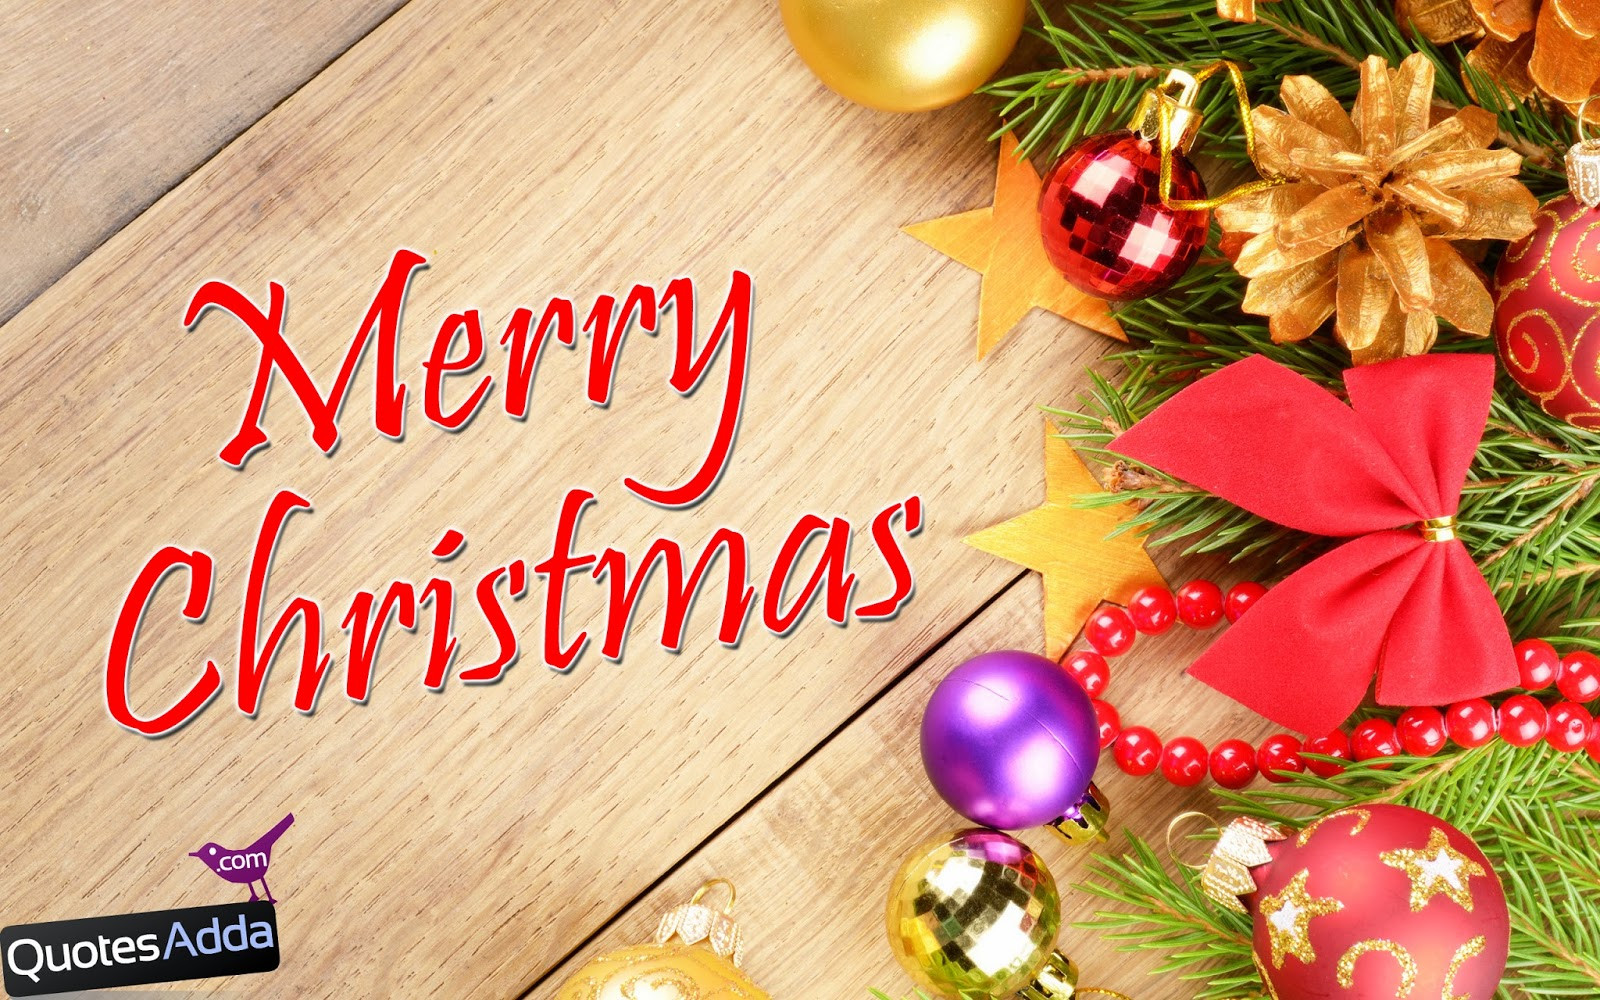 Merry Christmas Quotes  English Christmas Quotes QuotesGram